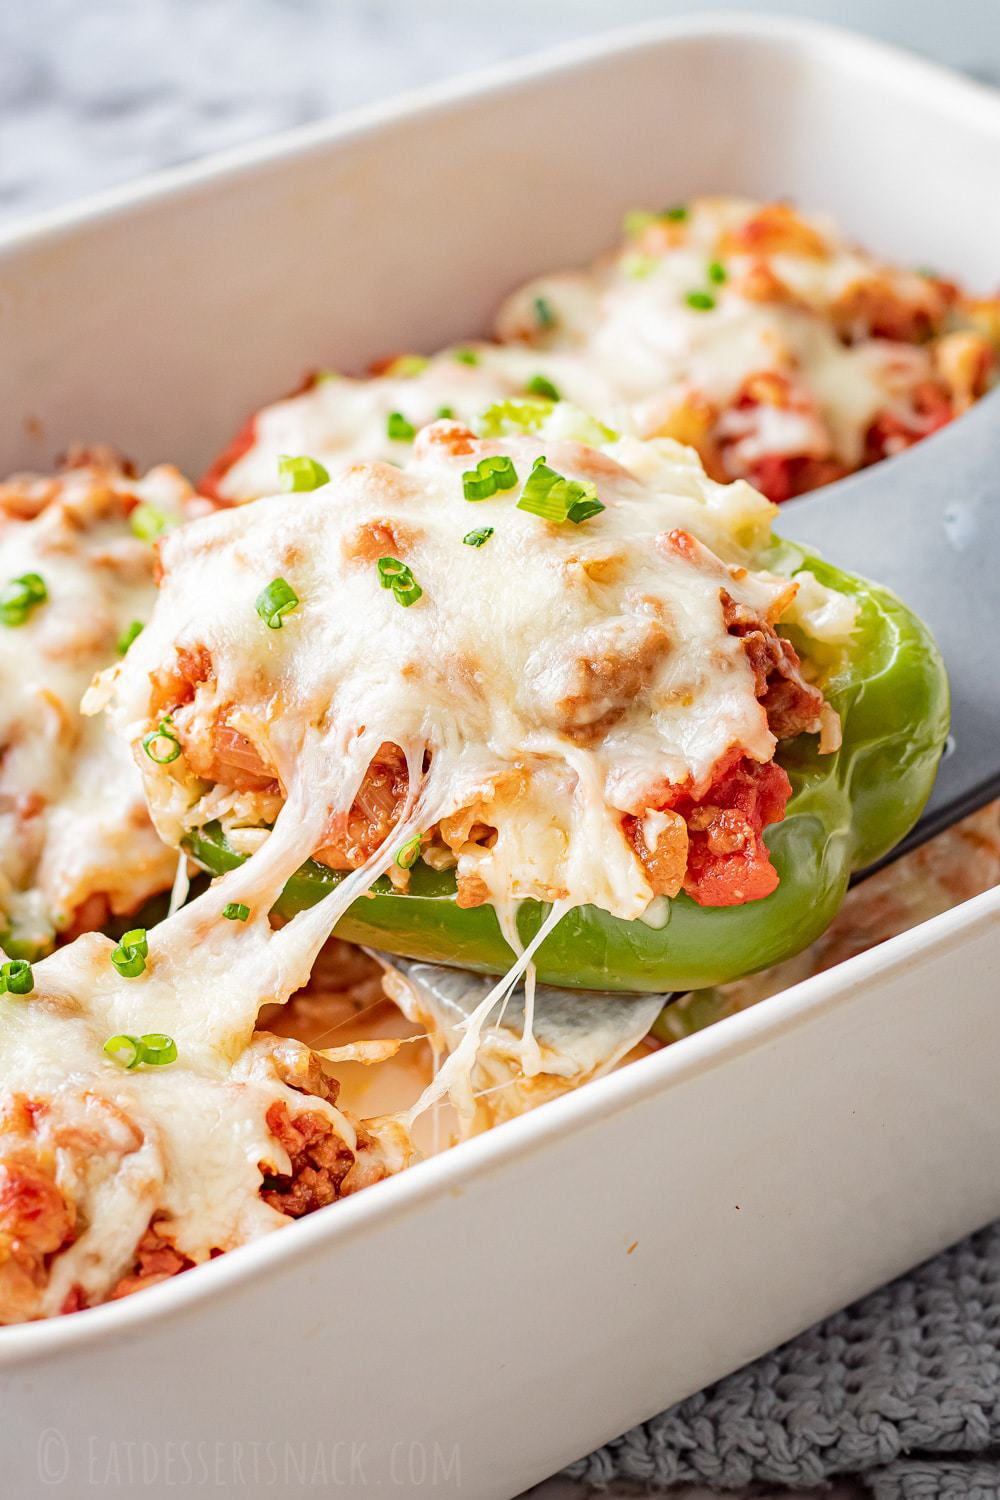 green bell pepper with ground beef filling, melted cheese on top in a white pan.